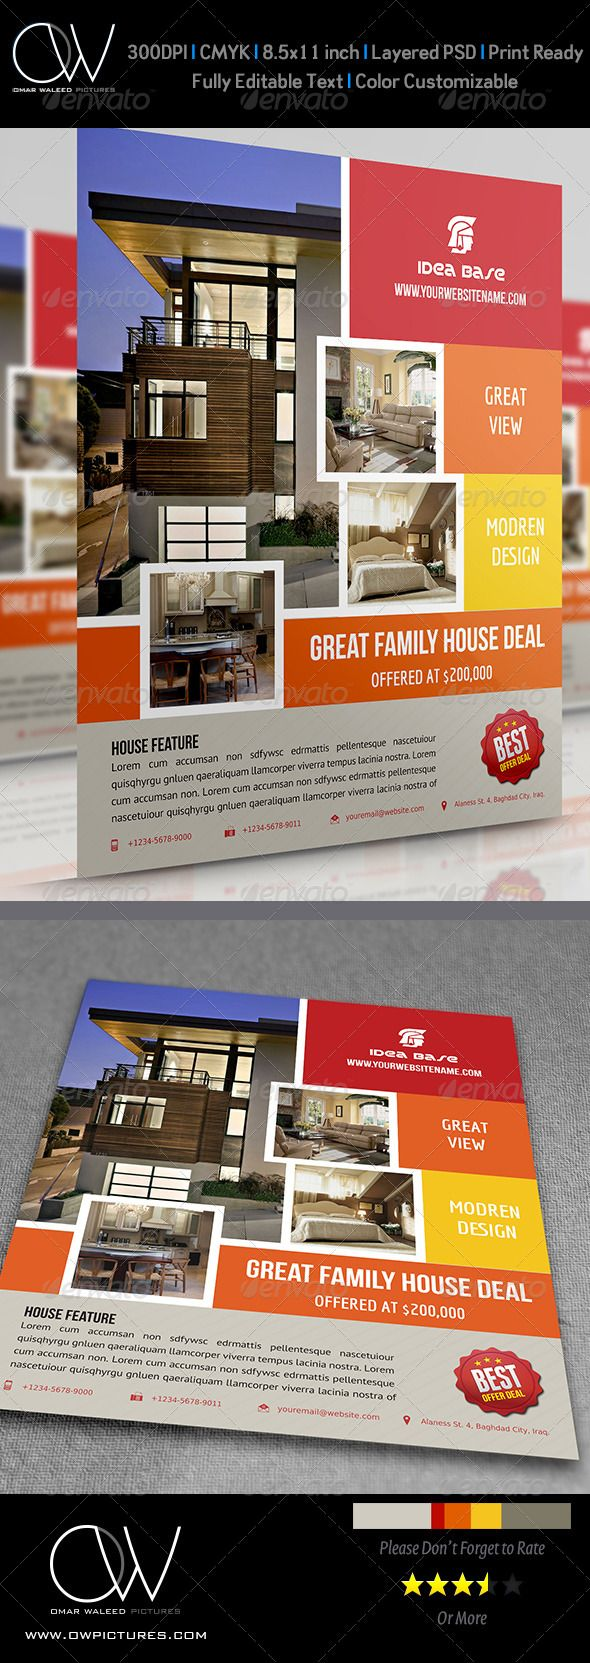 best images about real estate postcard design ideas on flyer description real estate flyer was designed for exclusively corporate and small scale companies also it can be used for variety purposes